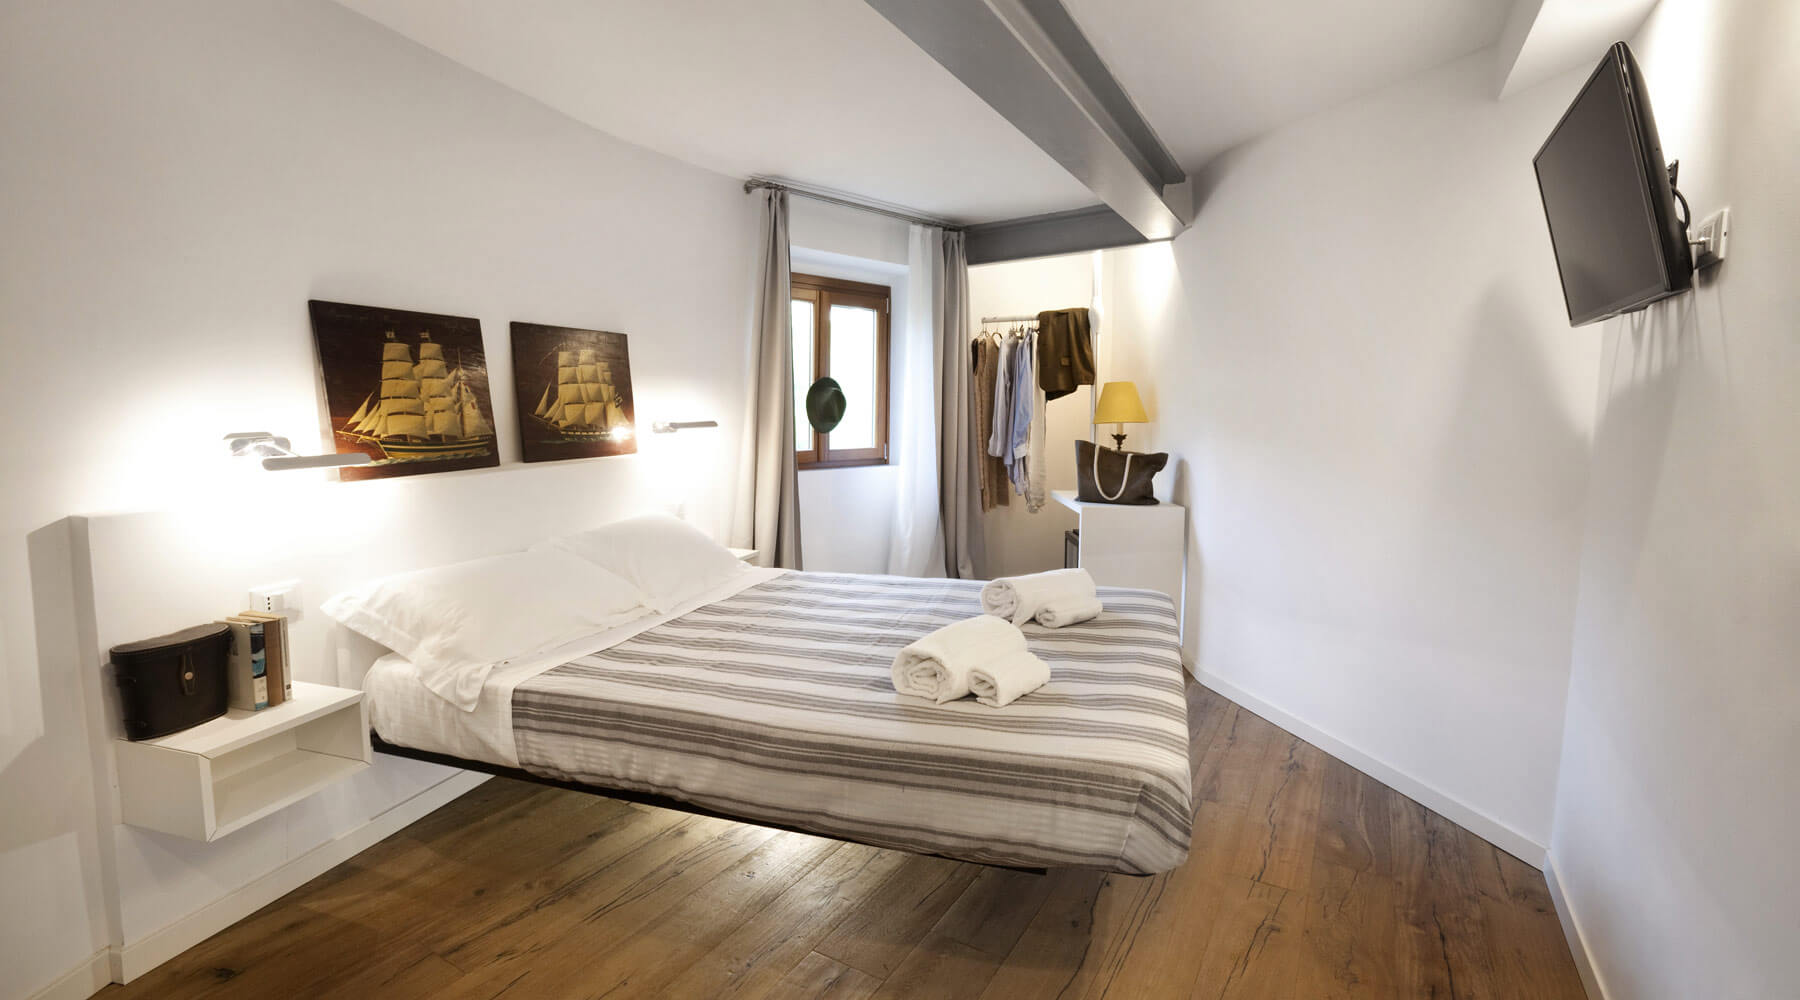 Lago welcome portovenere hotel di design lago - Camera da letto mare ...